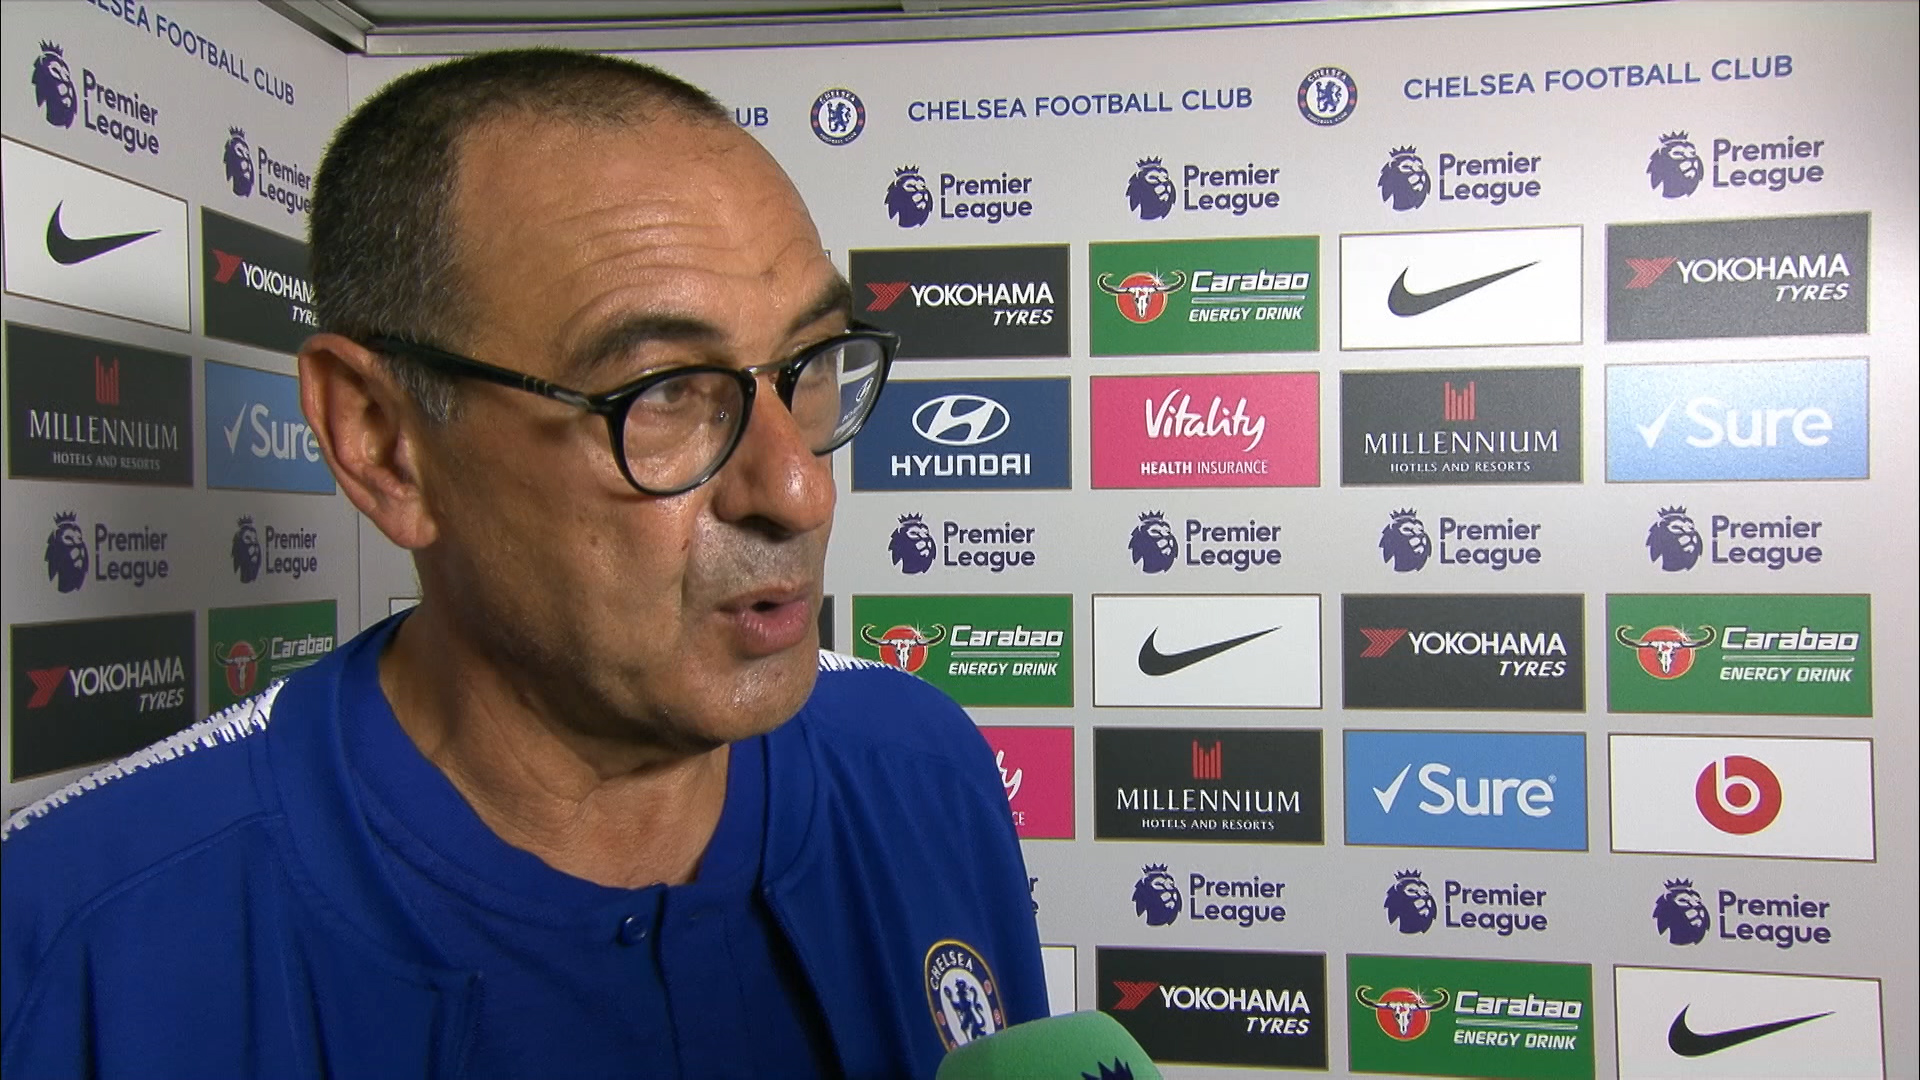 Chelsea 3-2 Arsenal: Maurizio Sarri hails 'very important' win for Blues